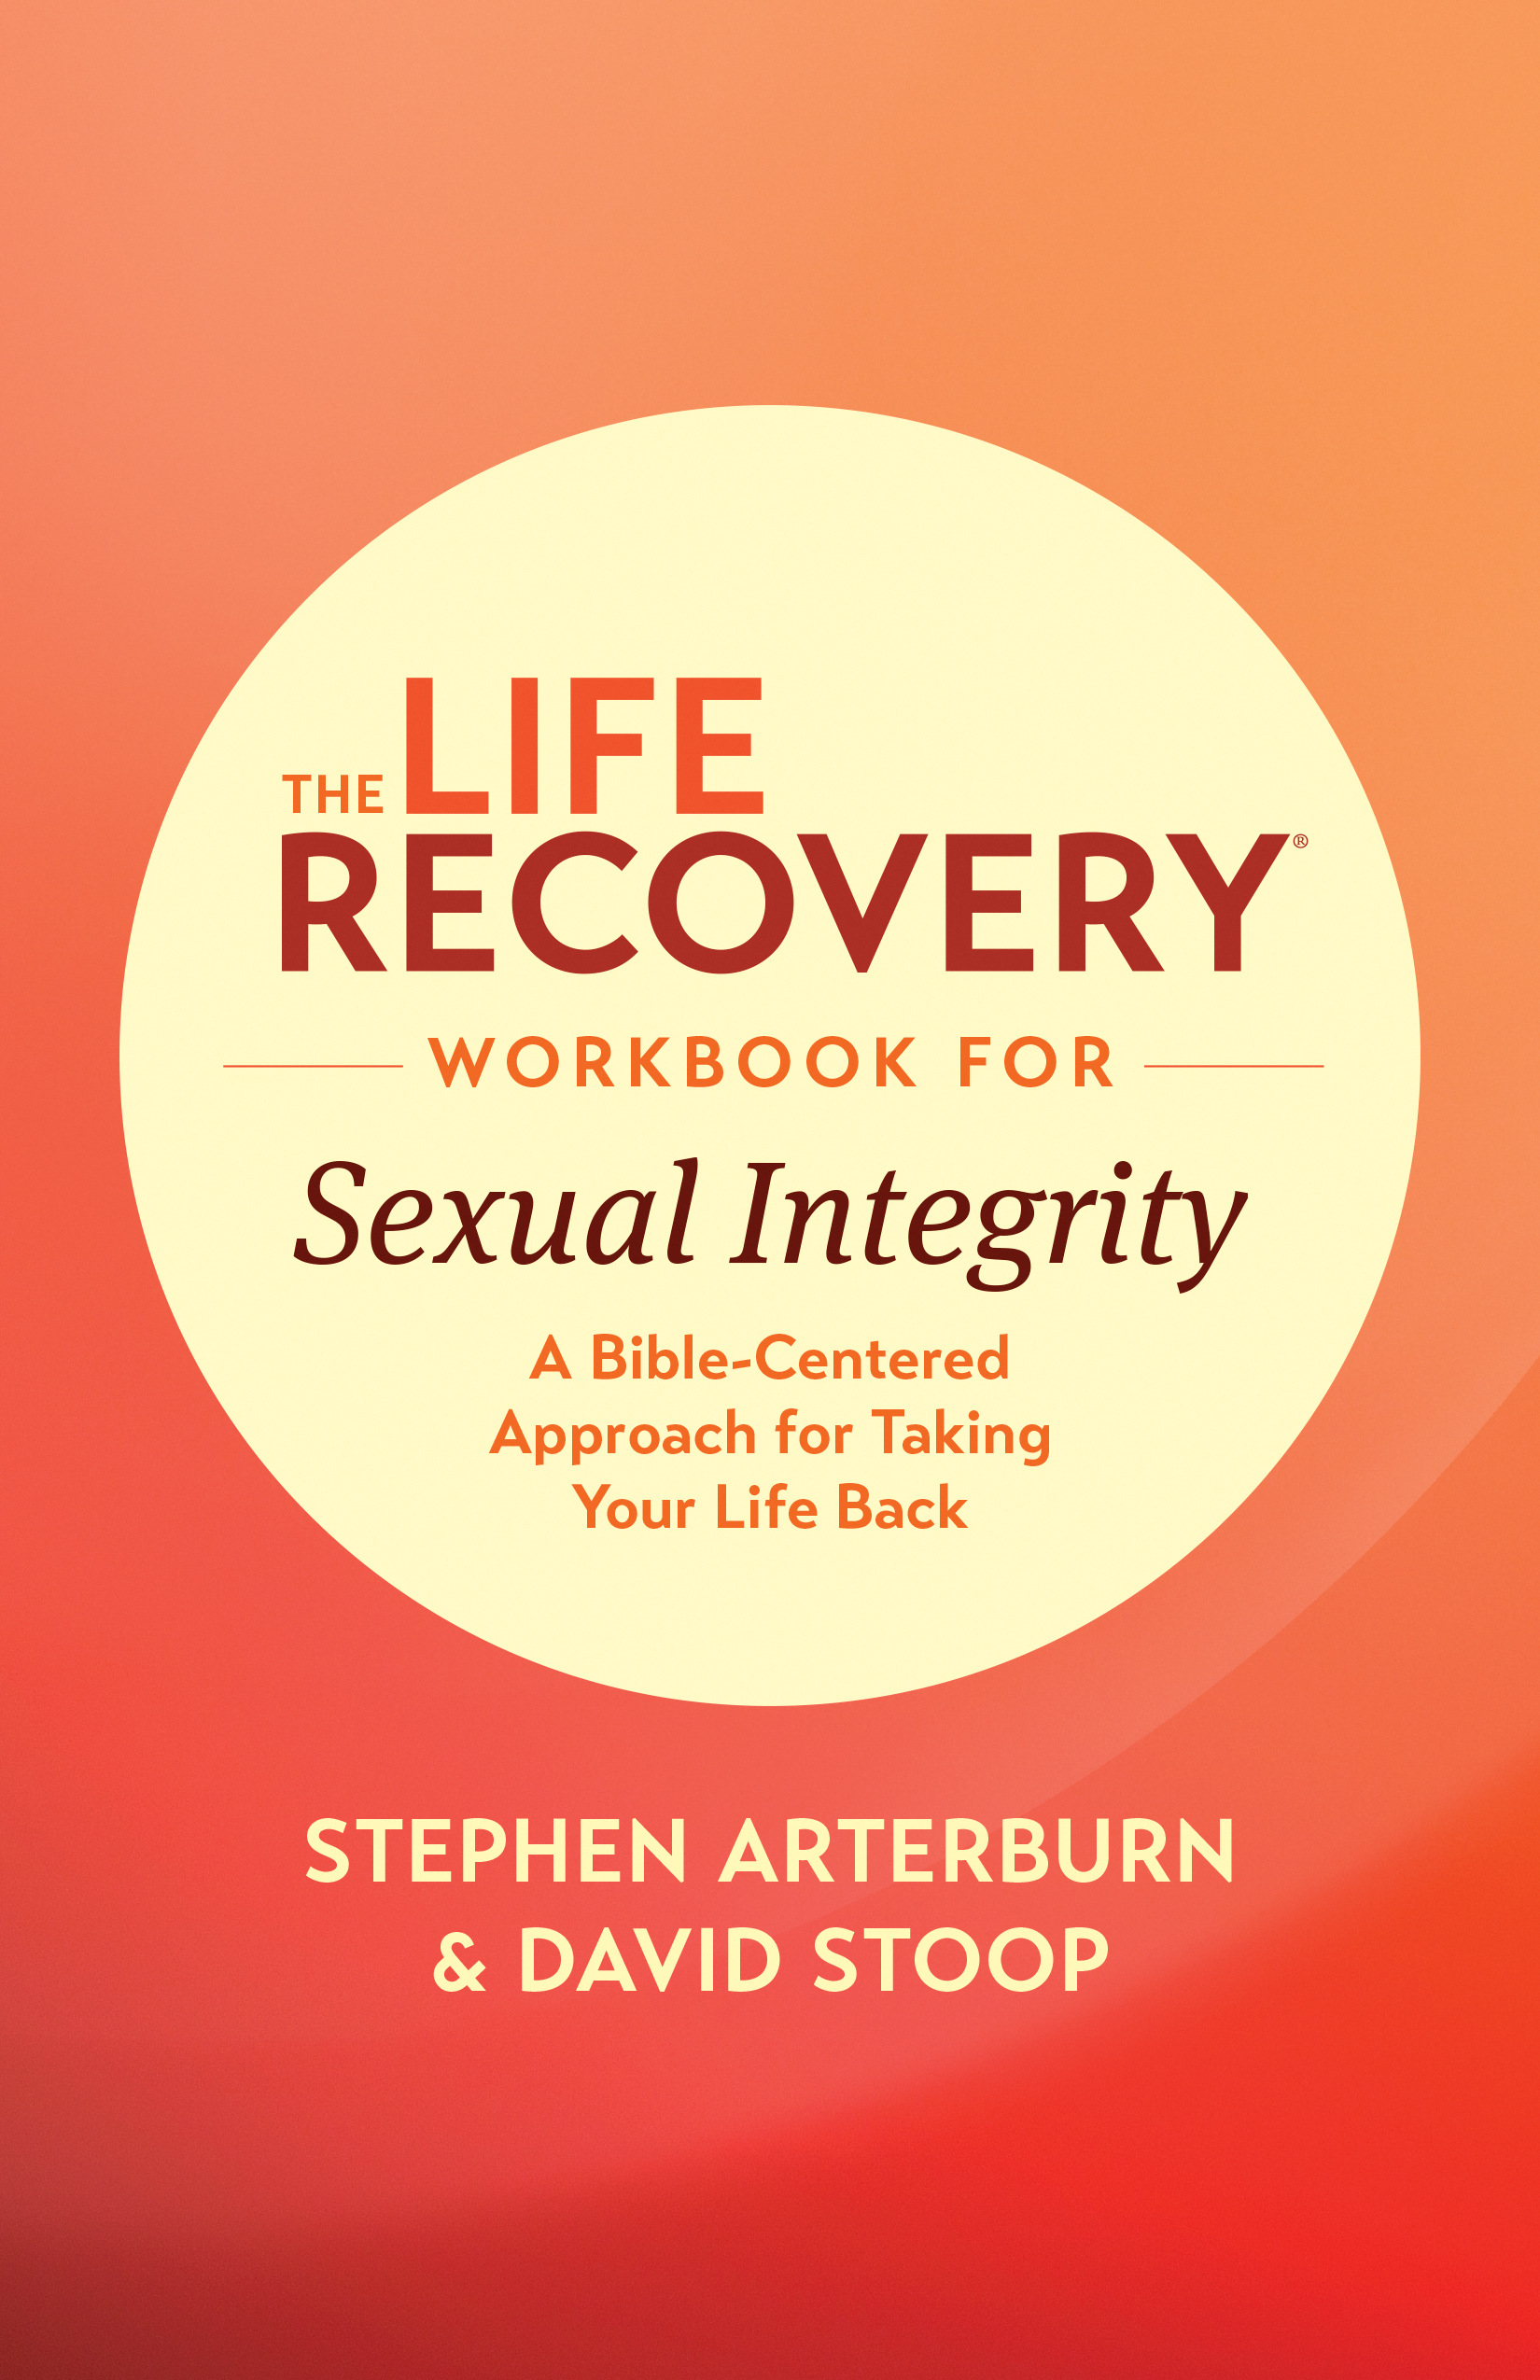 life recovery workbook for sexual integrity